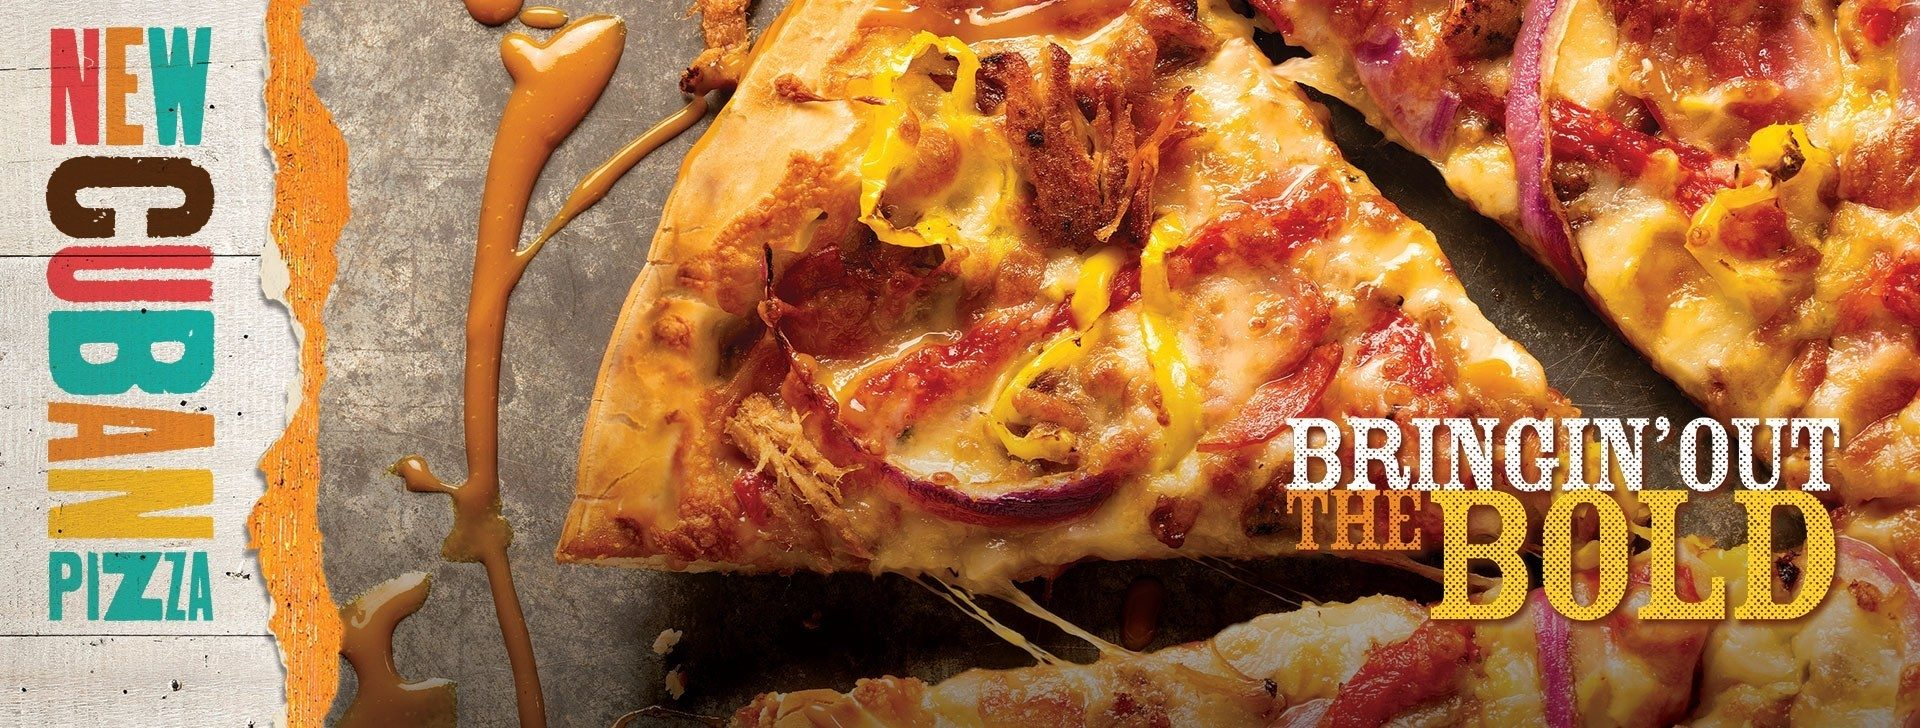 Try the new Cuban Pizza at Pizza Ranch!